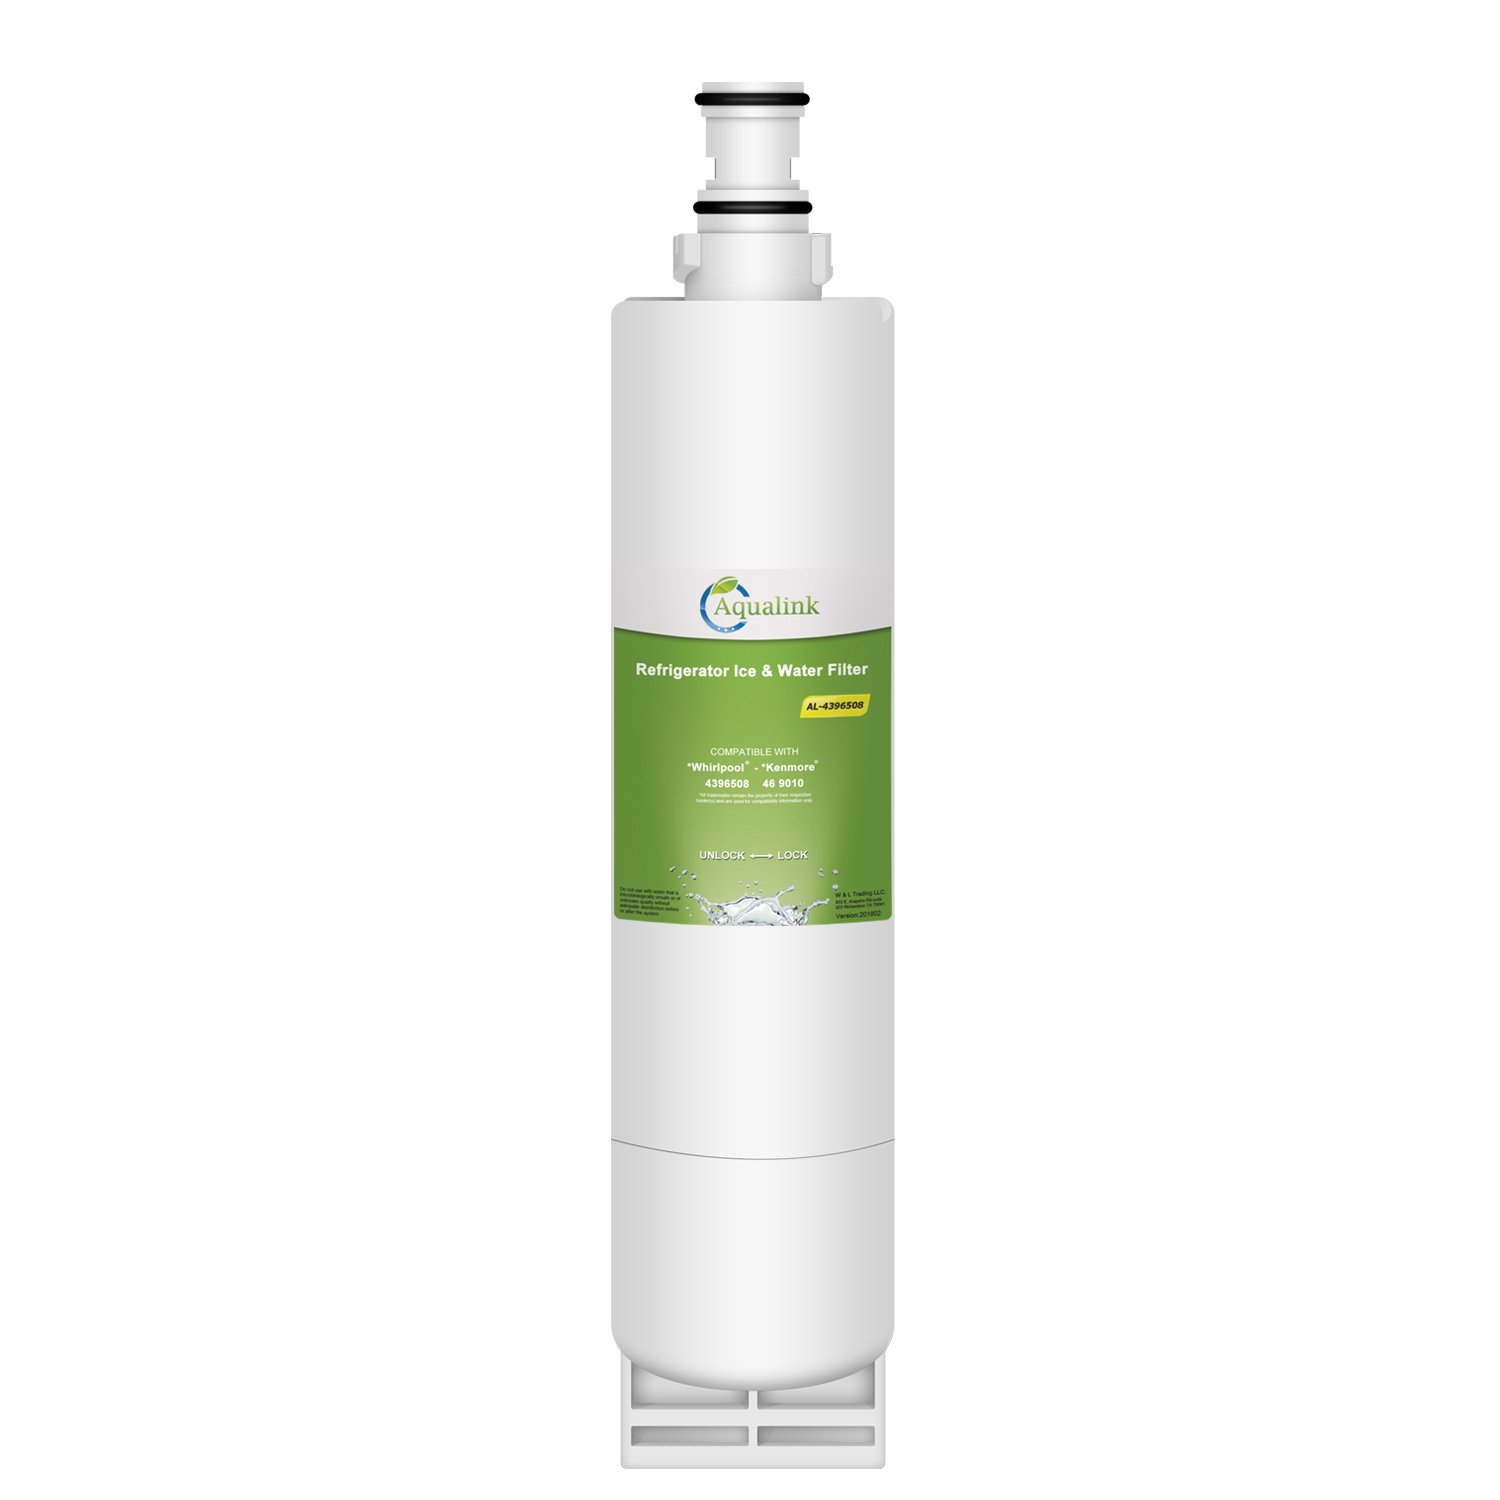 Aqualink 4396508 Refrigerator Water Filter Replacement for Whirlpool Water Filter 4396508, 4396510, EDR5RXD1, EveryDrop Filter 5, NLC240V, PUR W10186668, Kenmore 46-9010 (1 Pack)